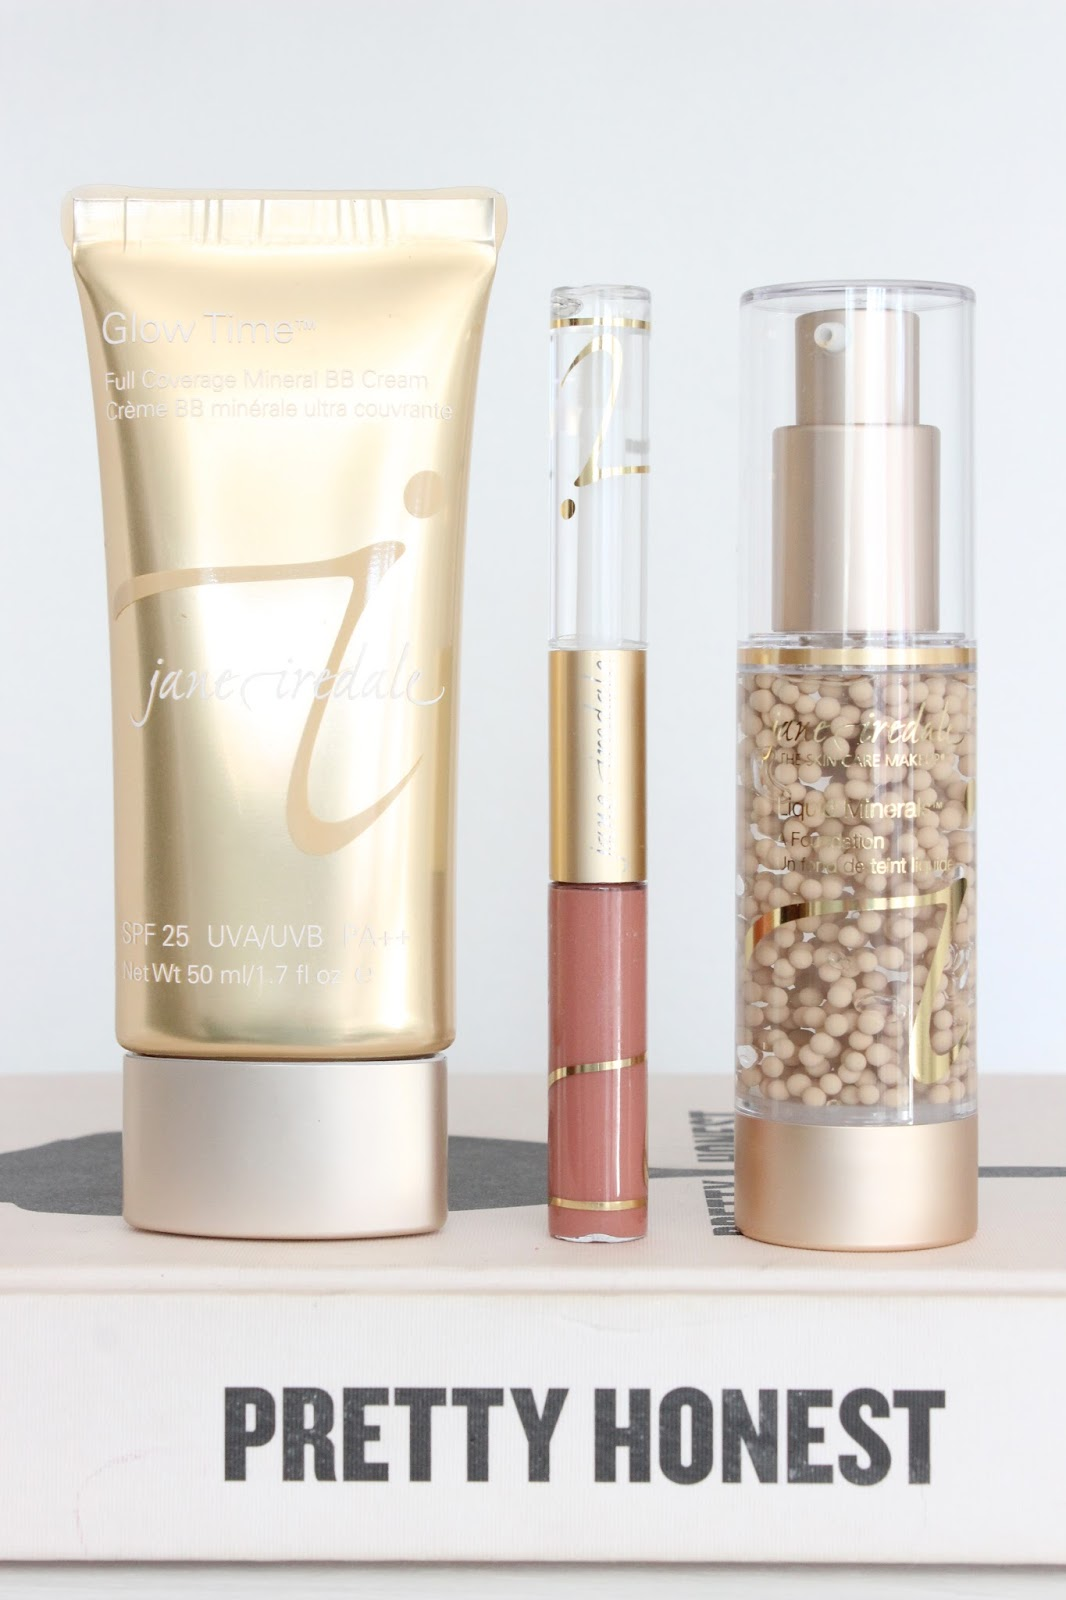 Introducing Jane Iredale